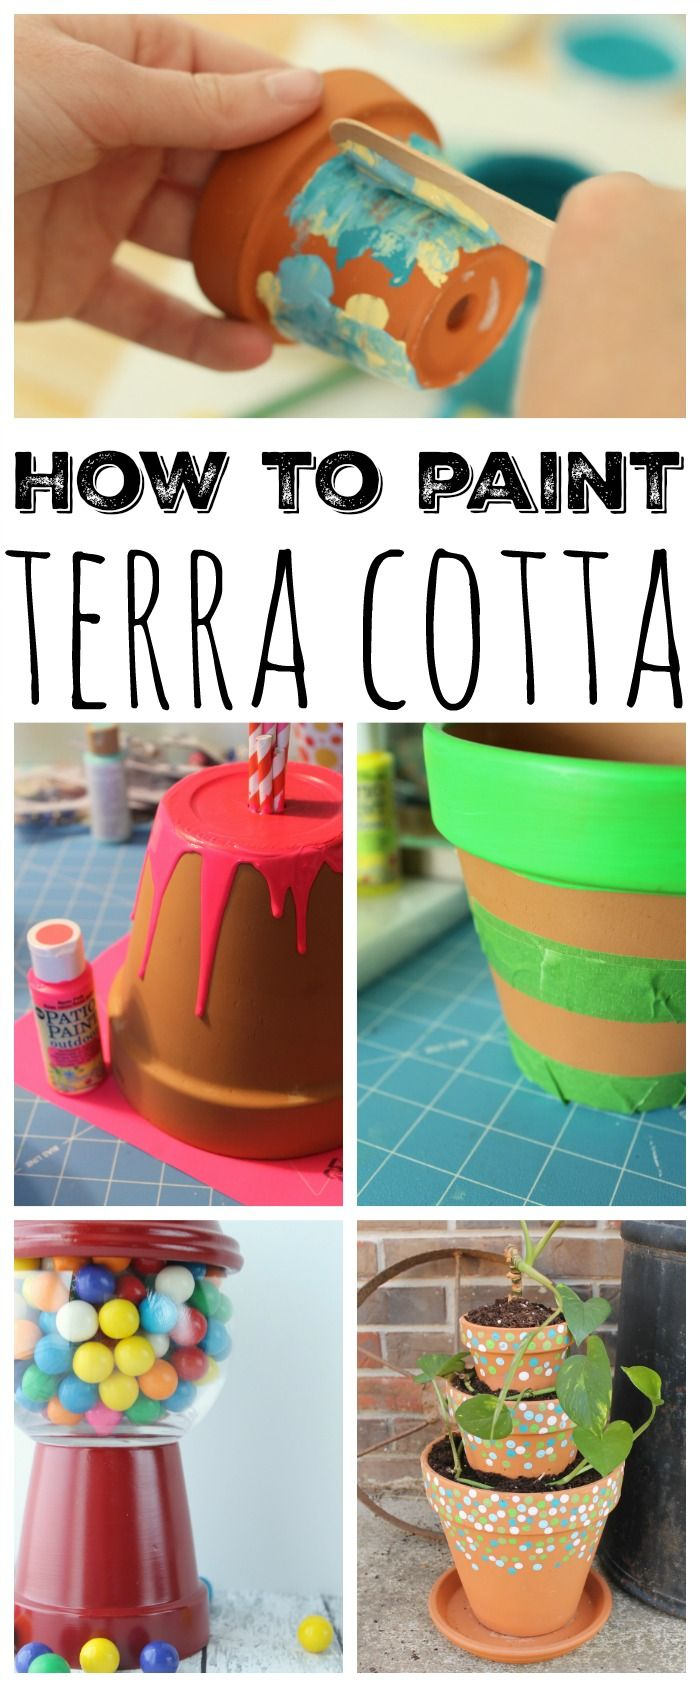 How To Paint Terra Cotta Bake Craft Sew Decorate Clay